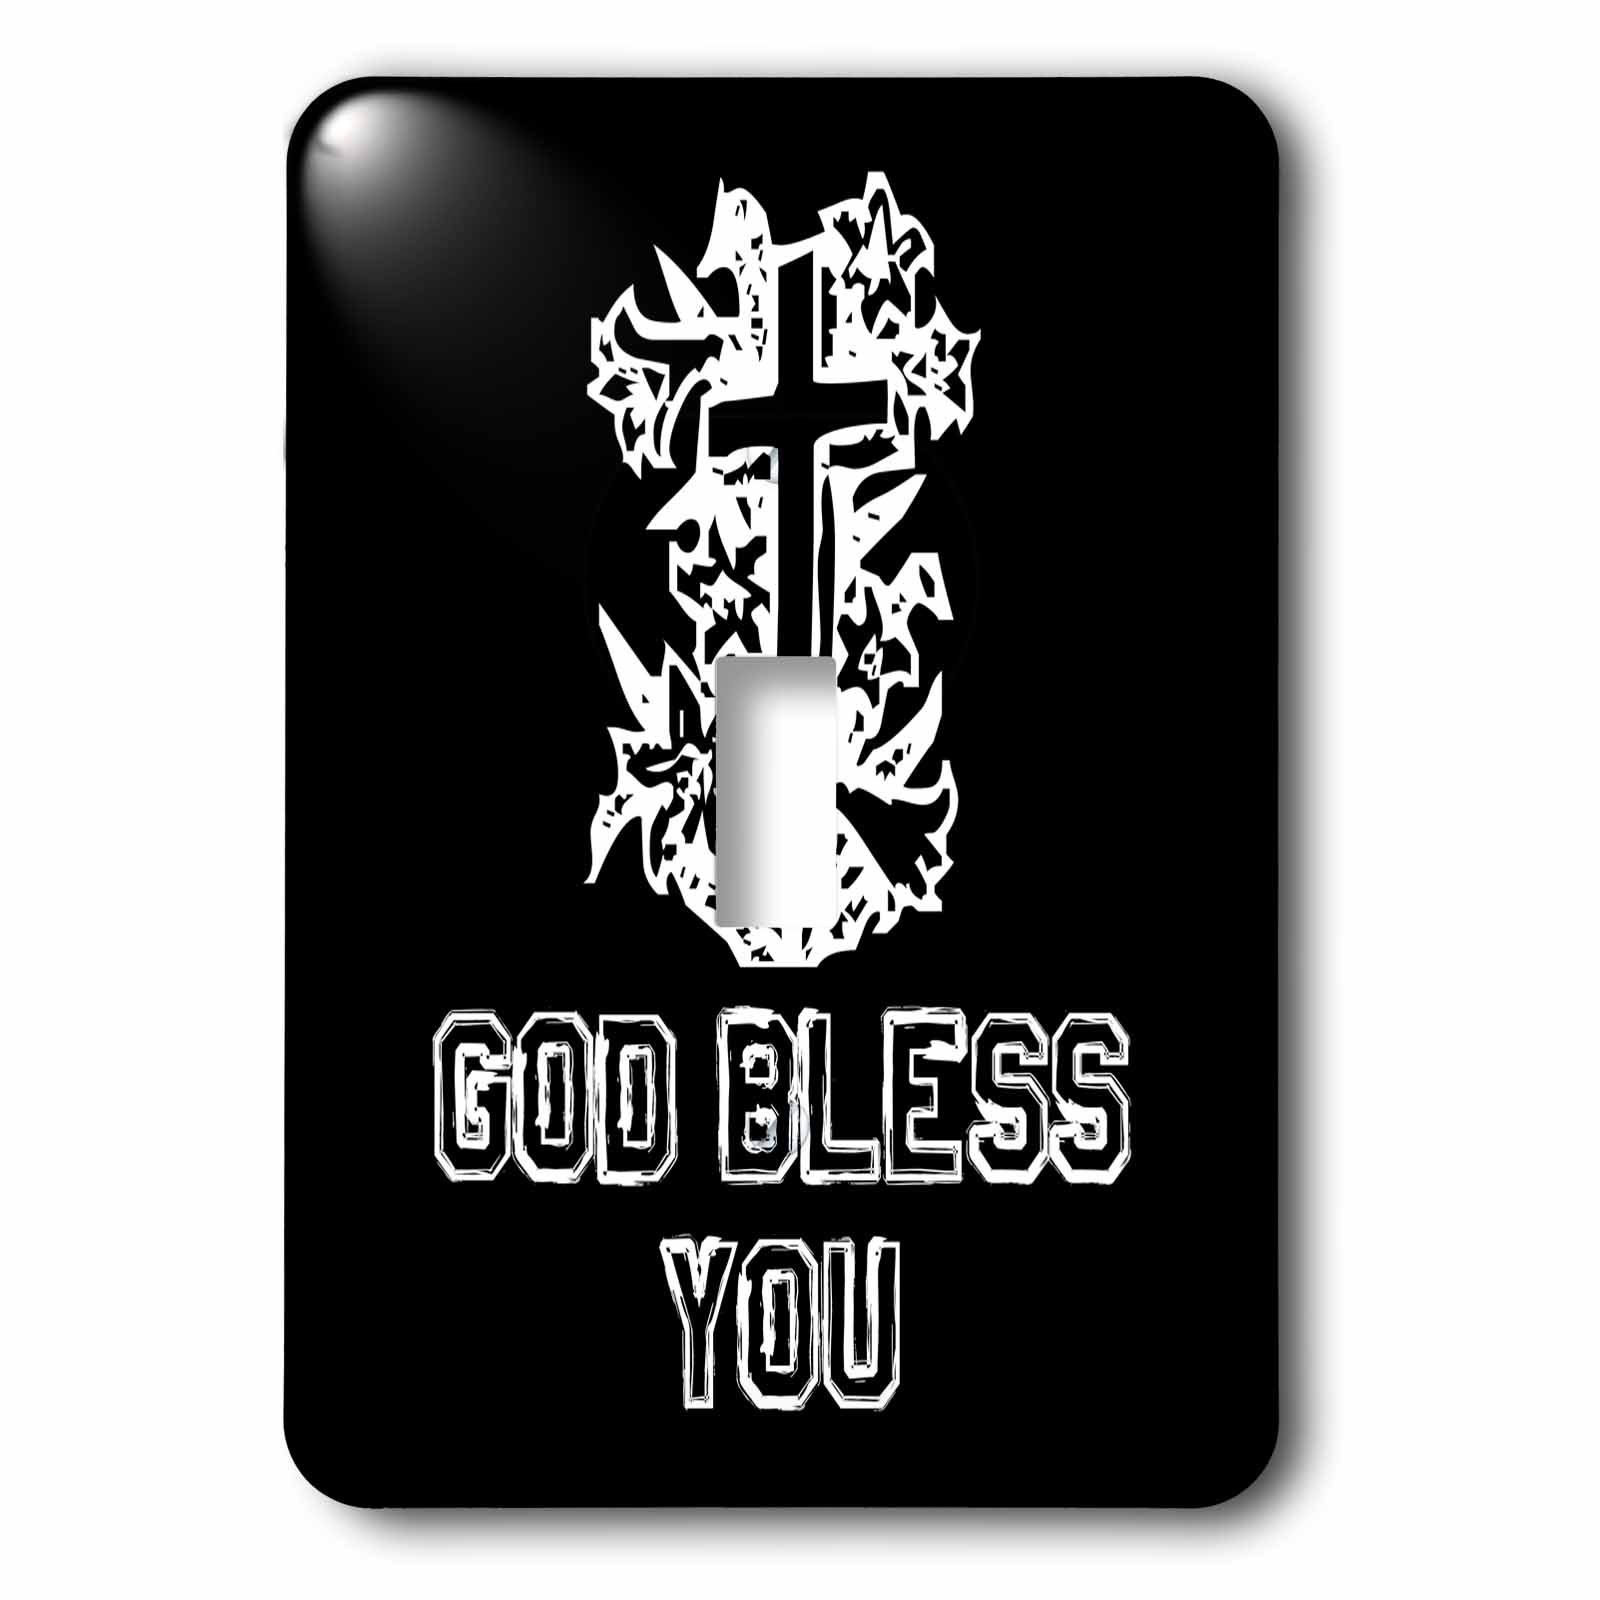 3dRose Alexis Design - Christian - Cross and floral composition. God Bless You text on black - Light Switch Covers - single toggle switch (lsp_286192_1)